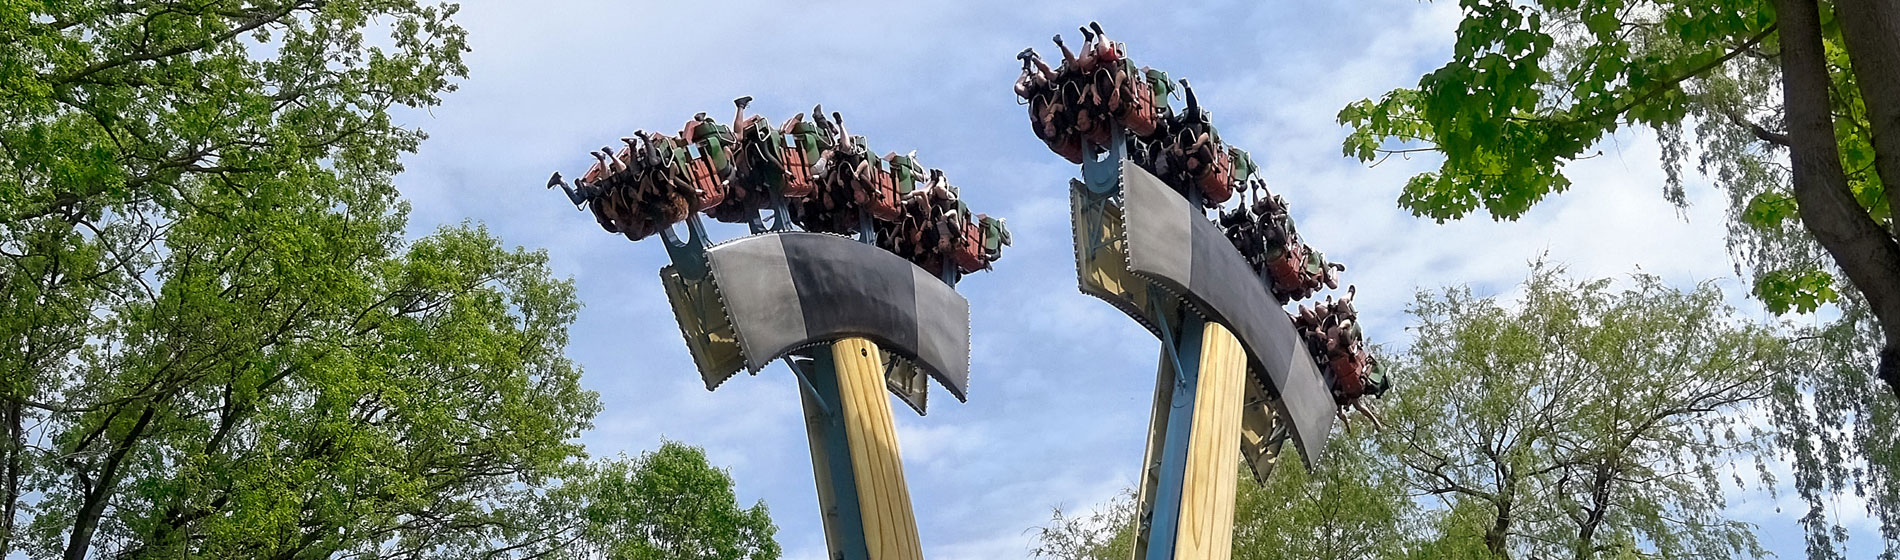 Canada's Wonderland Thrill Rides